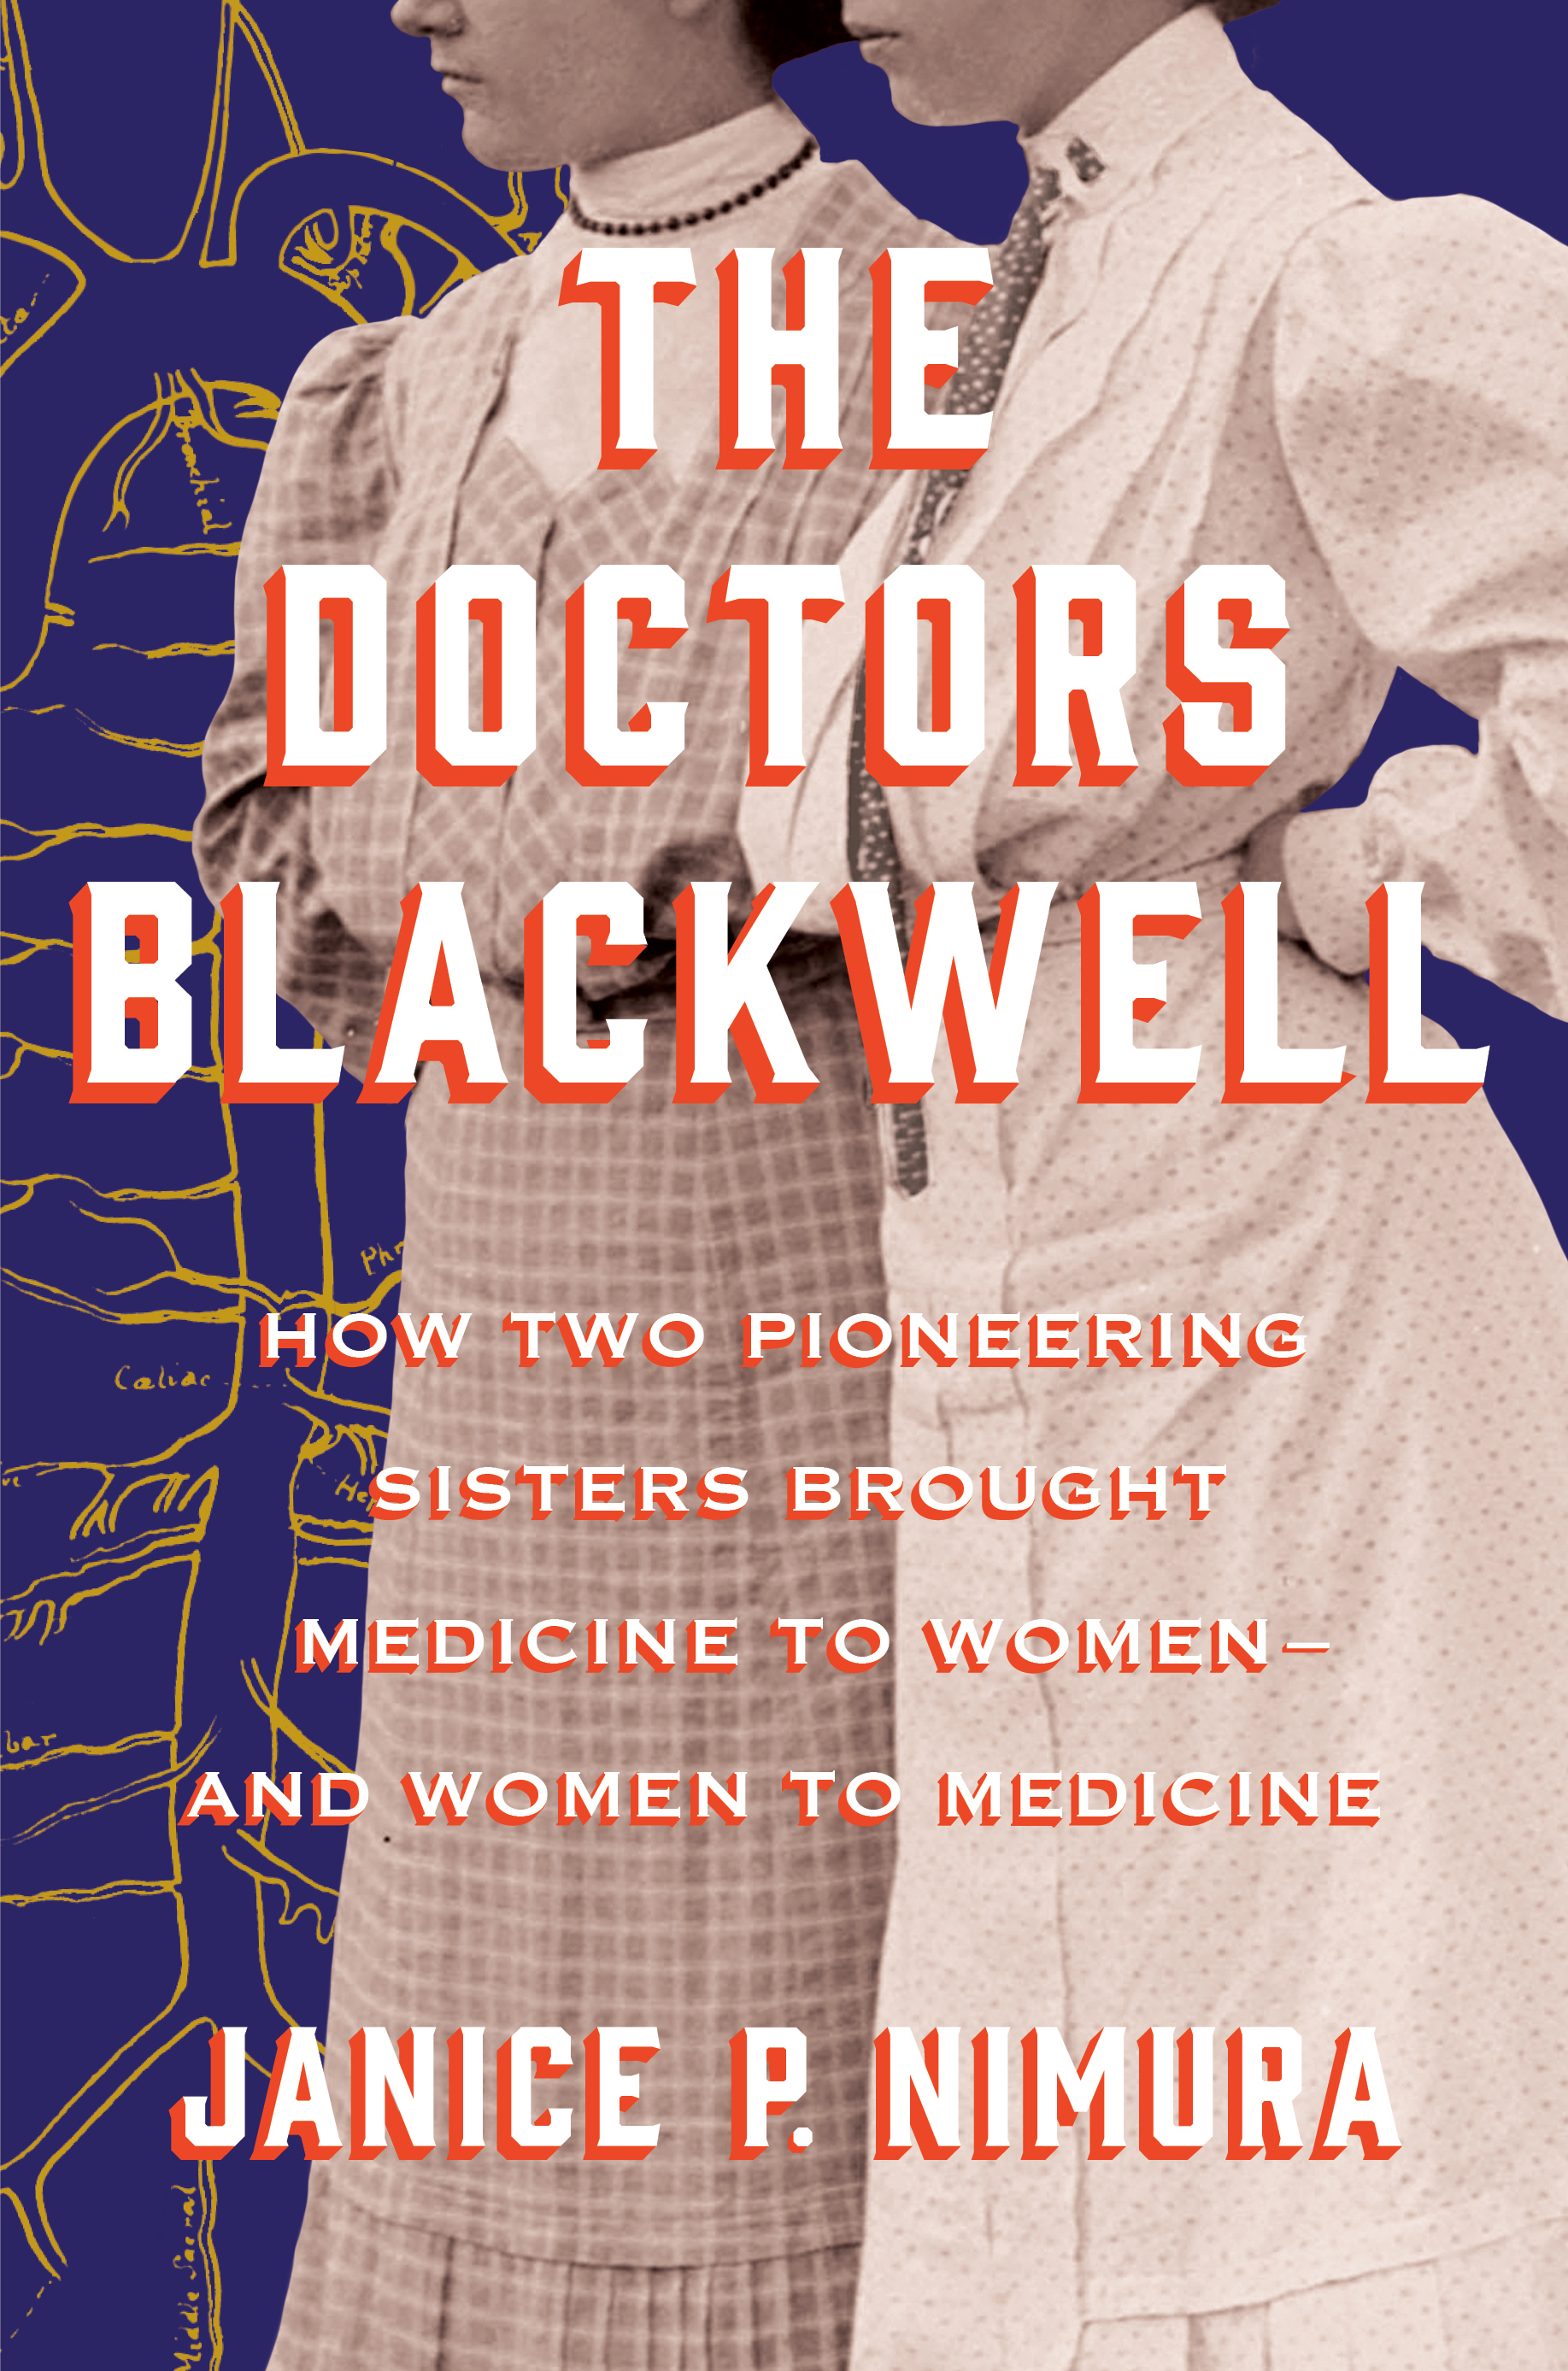 The Doctors Blackwell: A conversation with author Janice P. Nimura